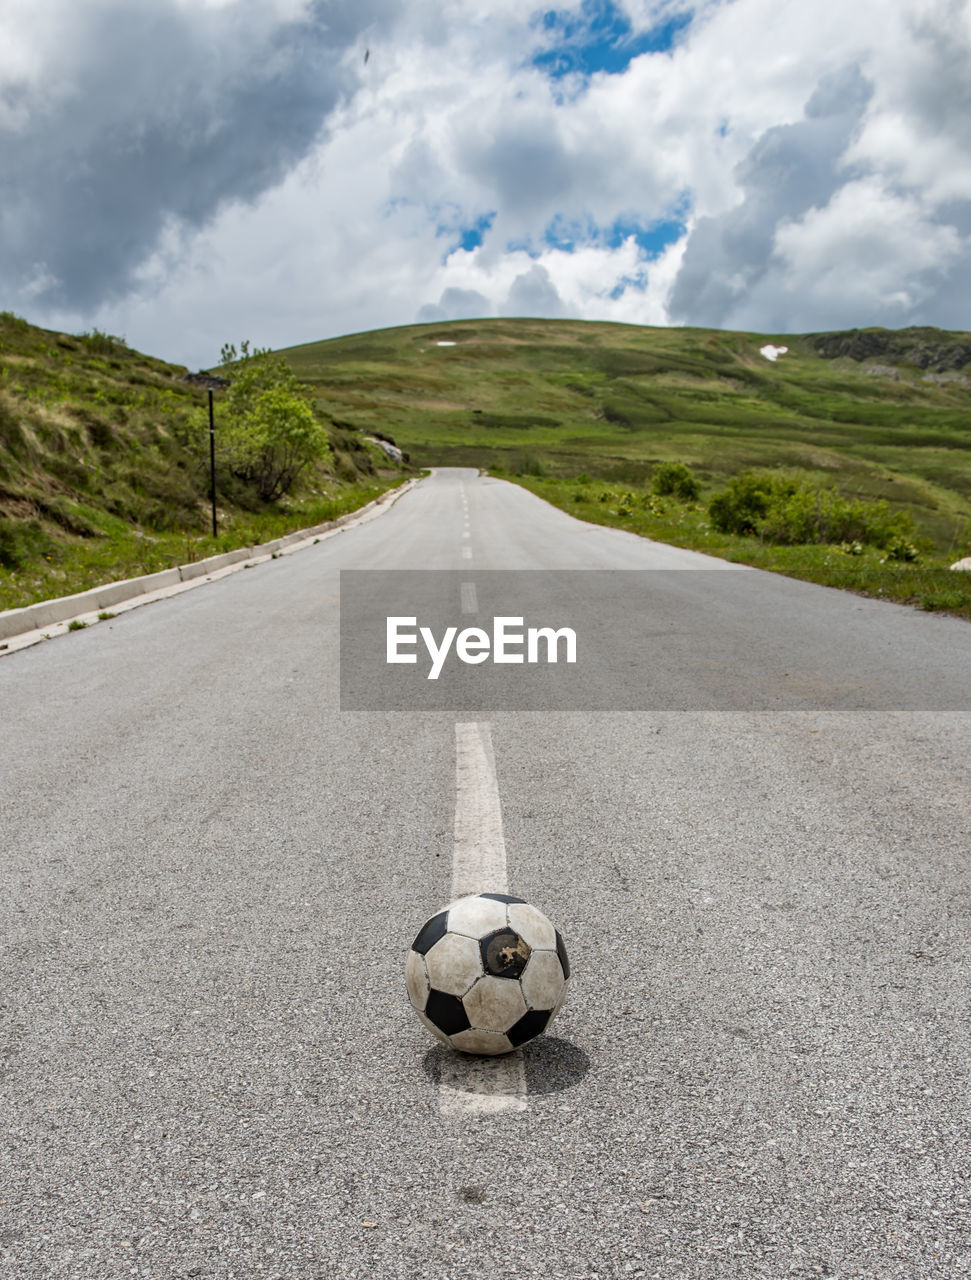 VIEW OF SOCCER BALL ON ROAD